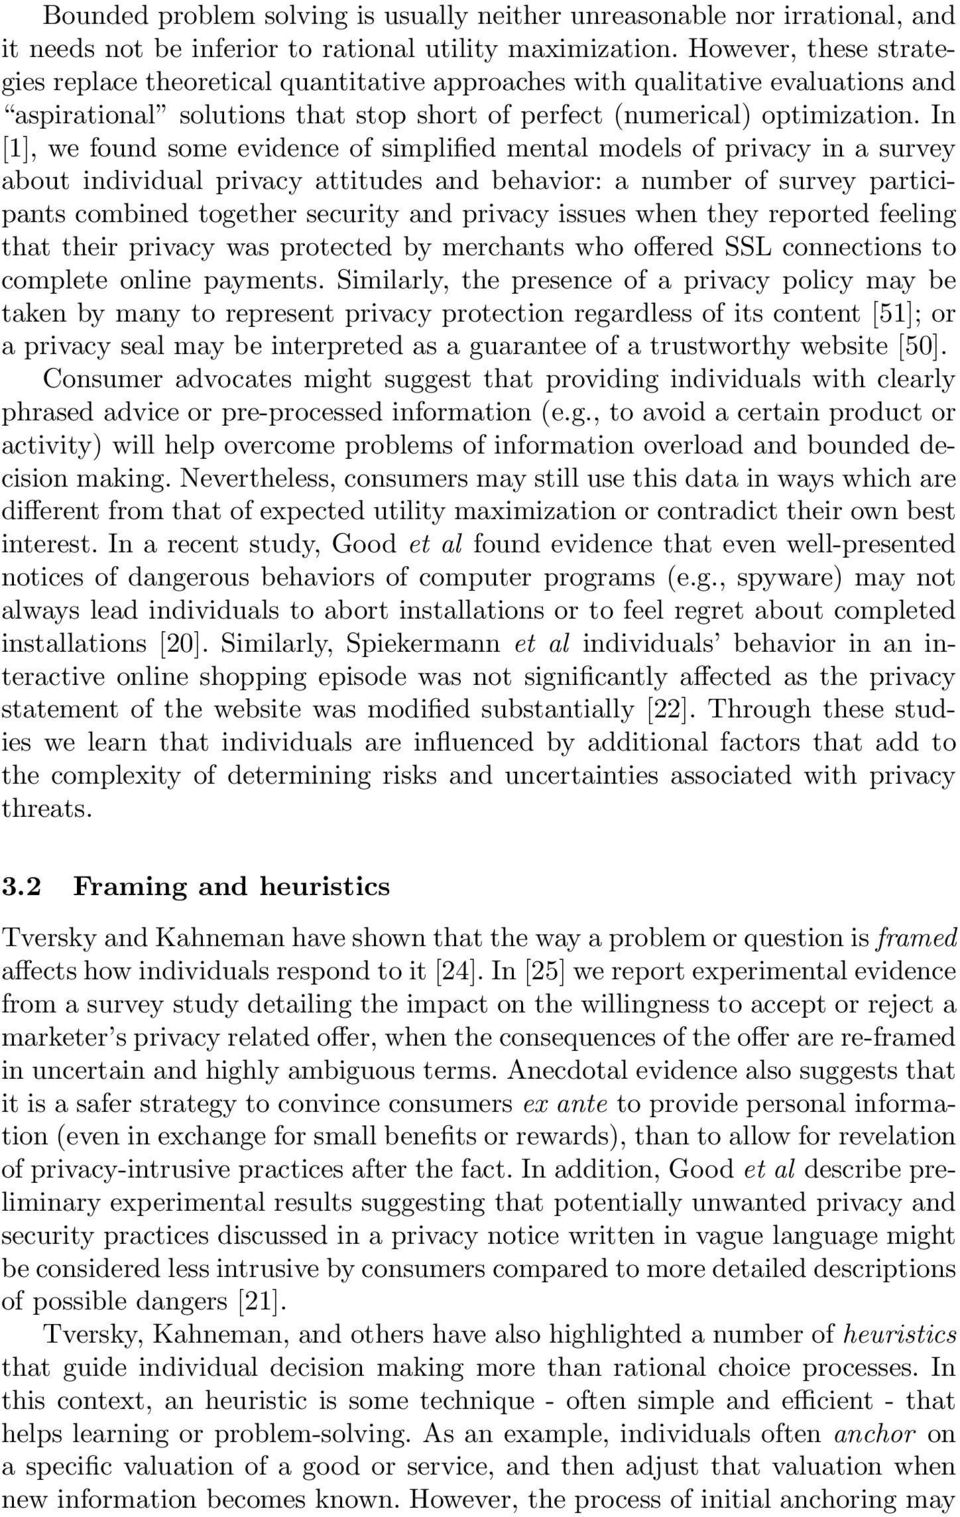 In [1], we found some evidence of simplified mental models of privacy in a survey about individual privacy attitudes and behavior: a number of survey participants combined together security and